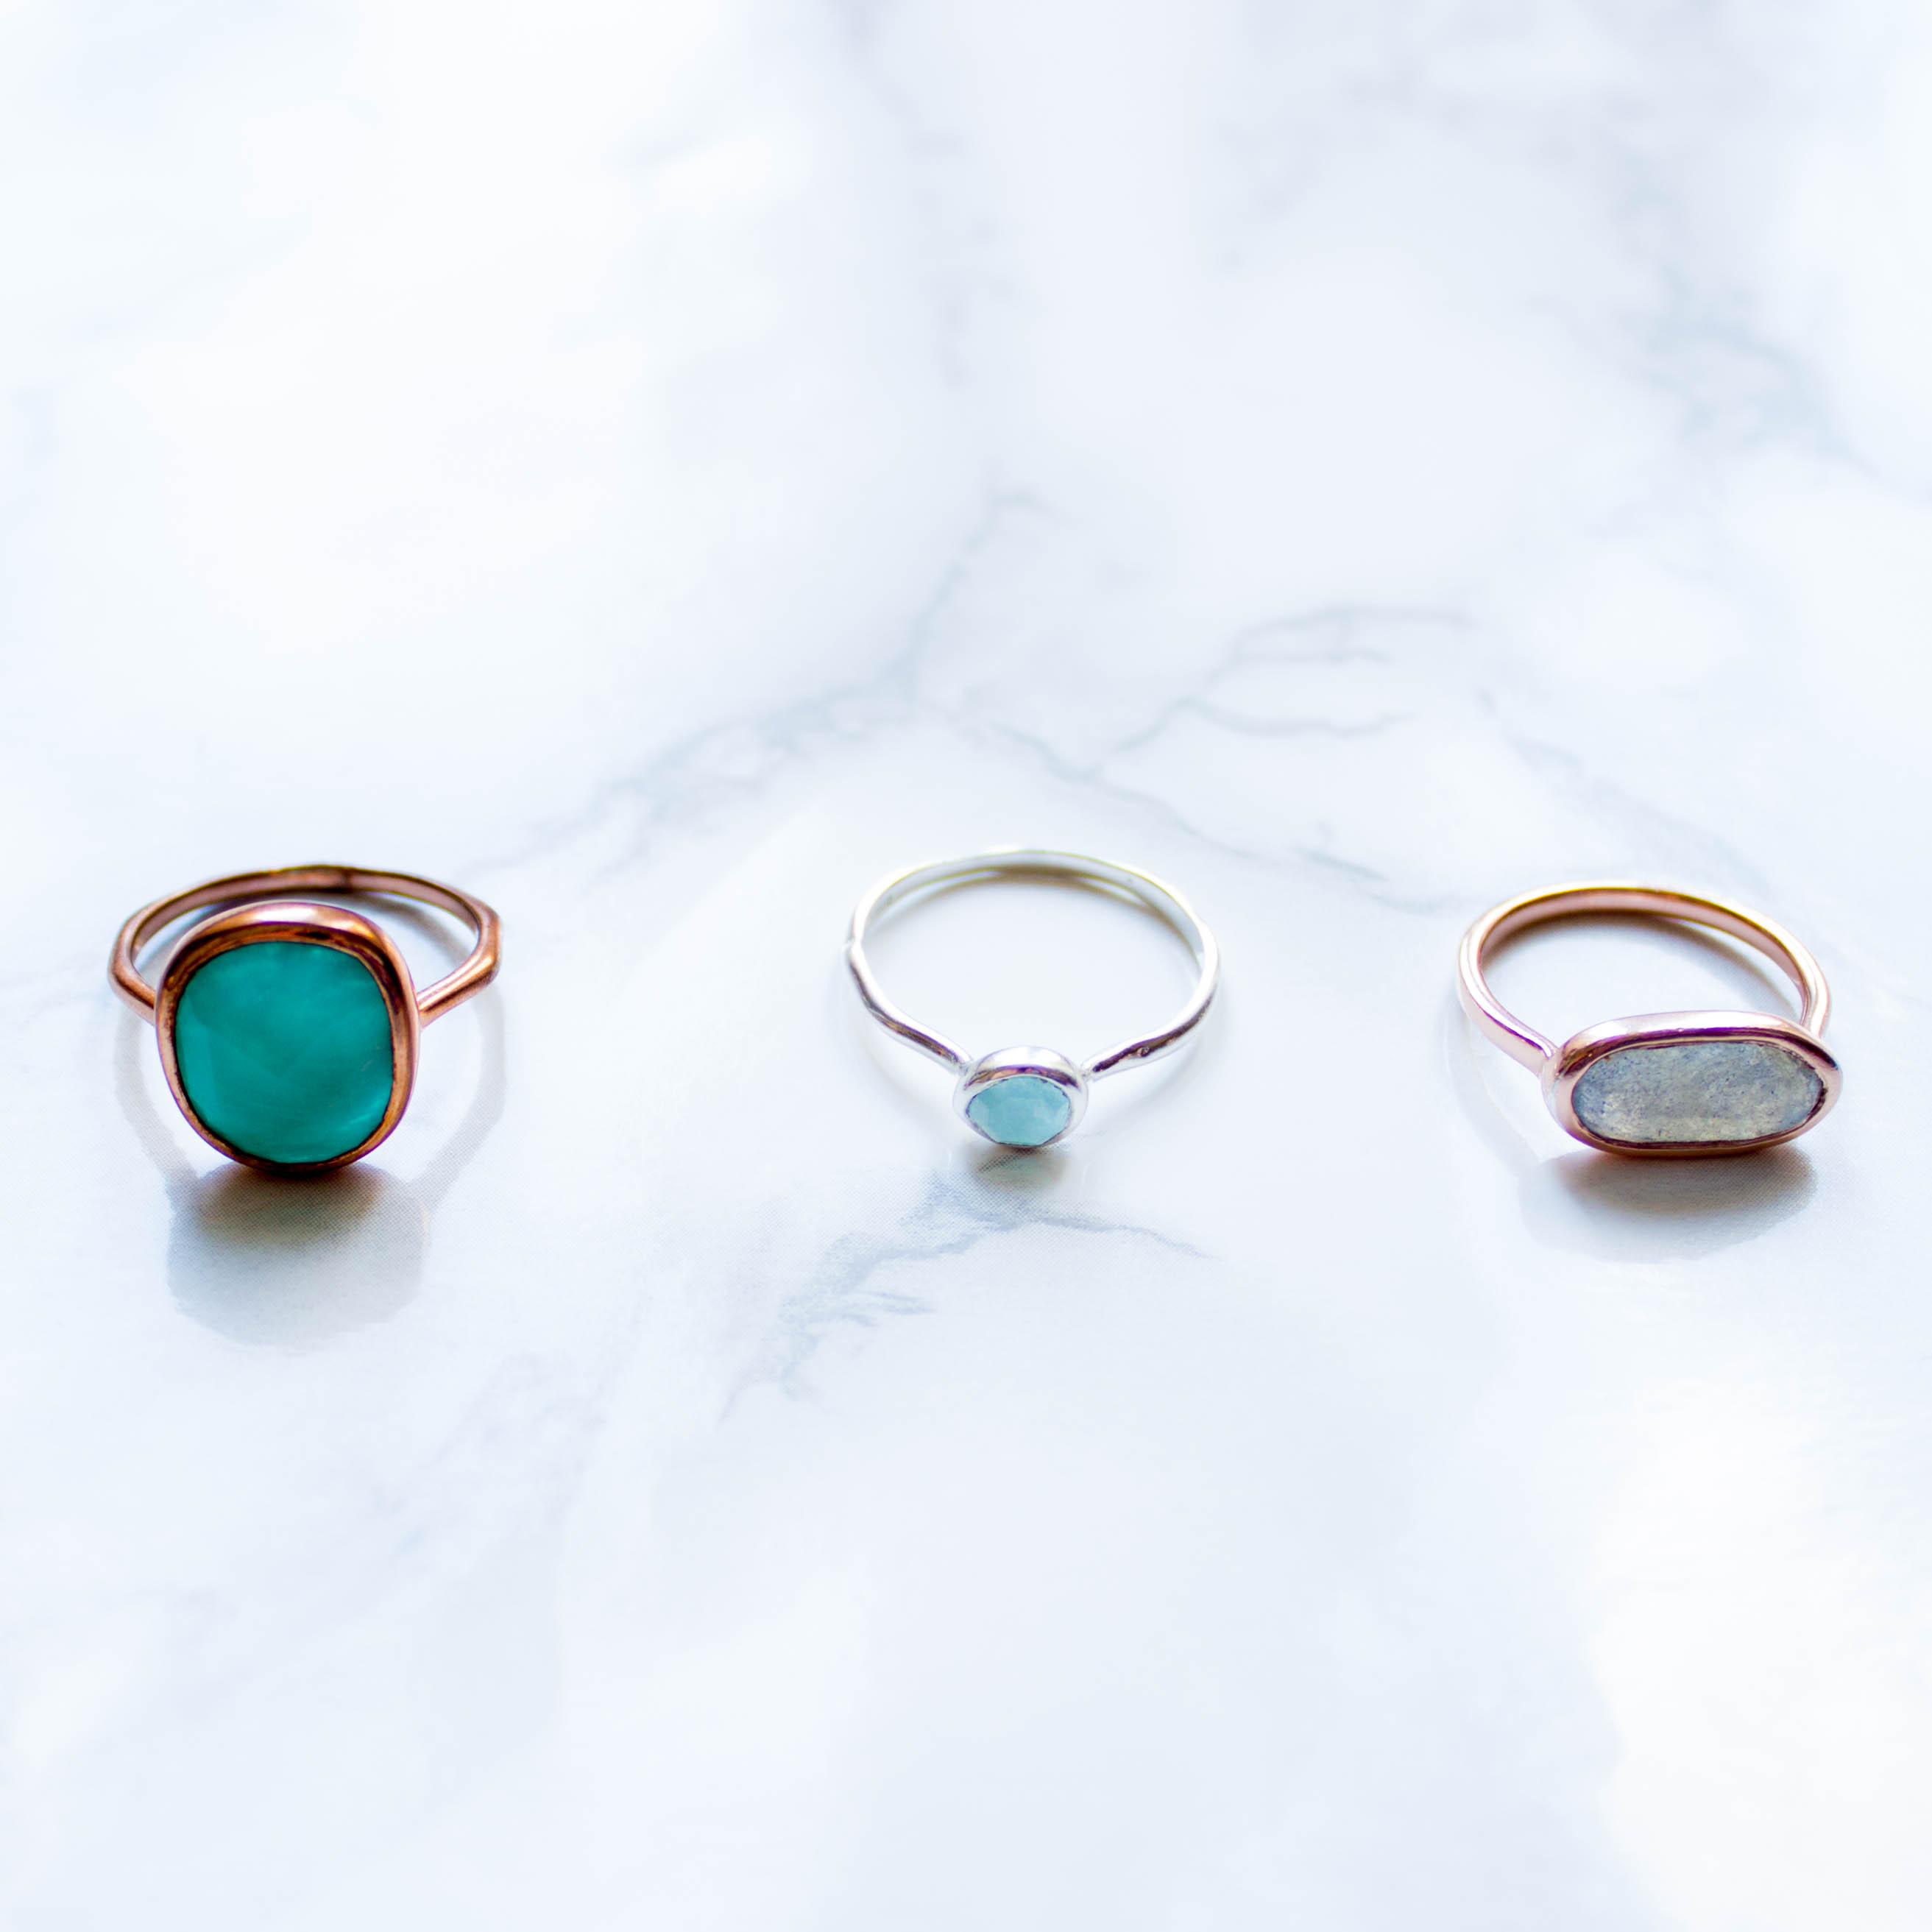 Monica Vinader Rings are stunning